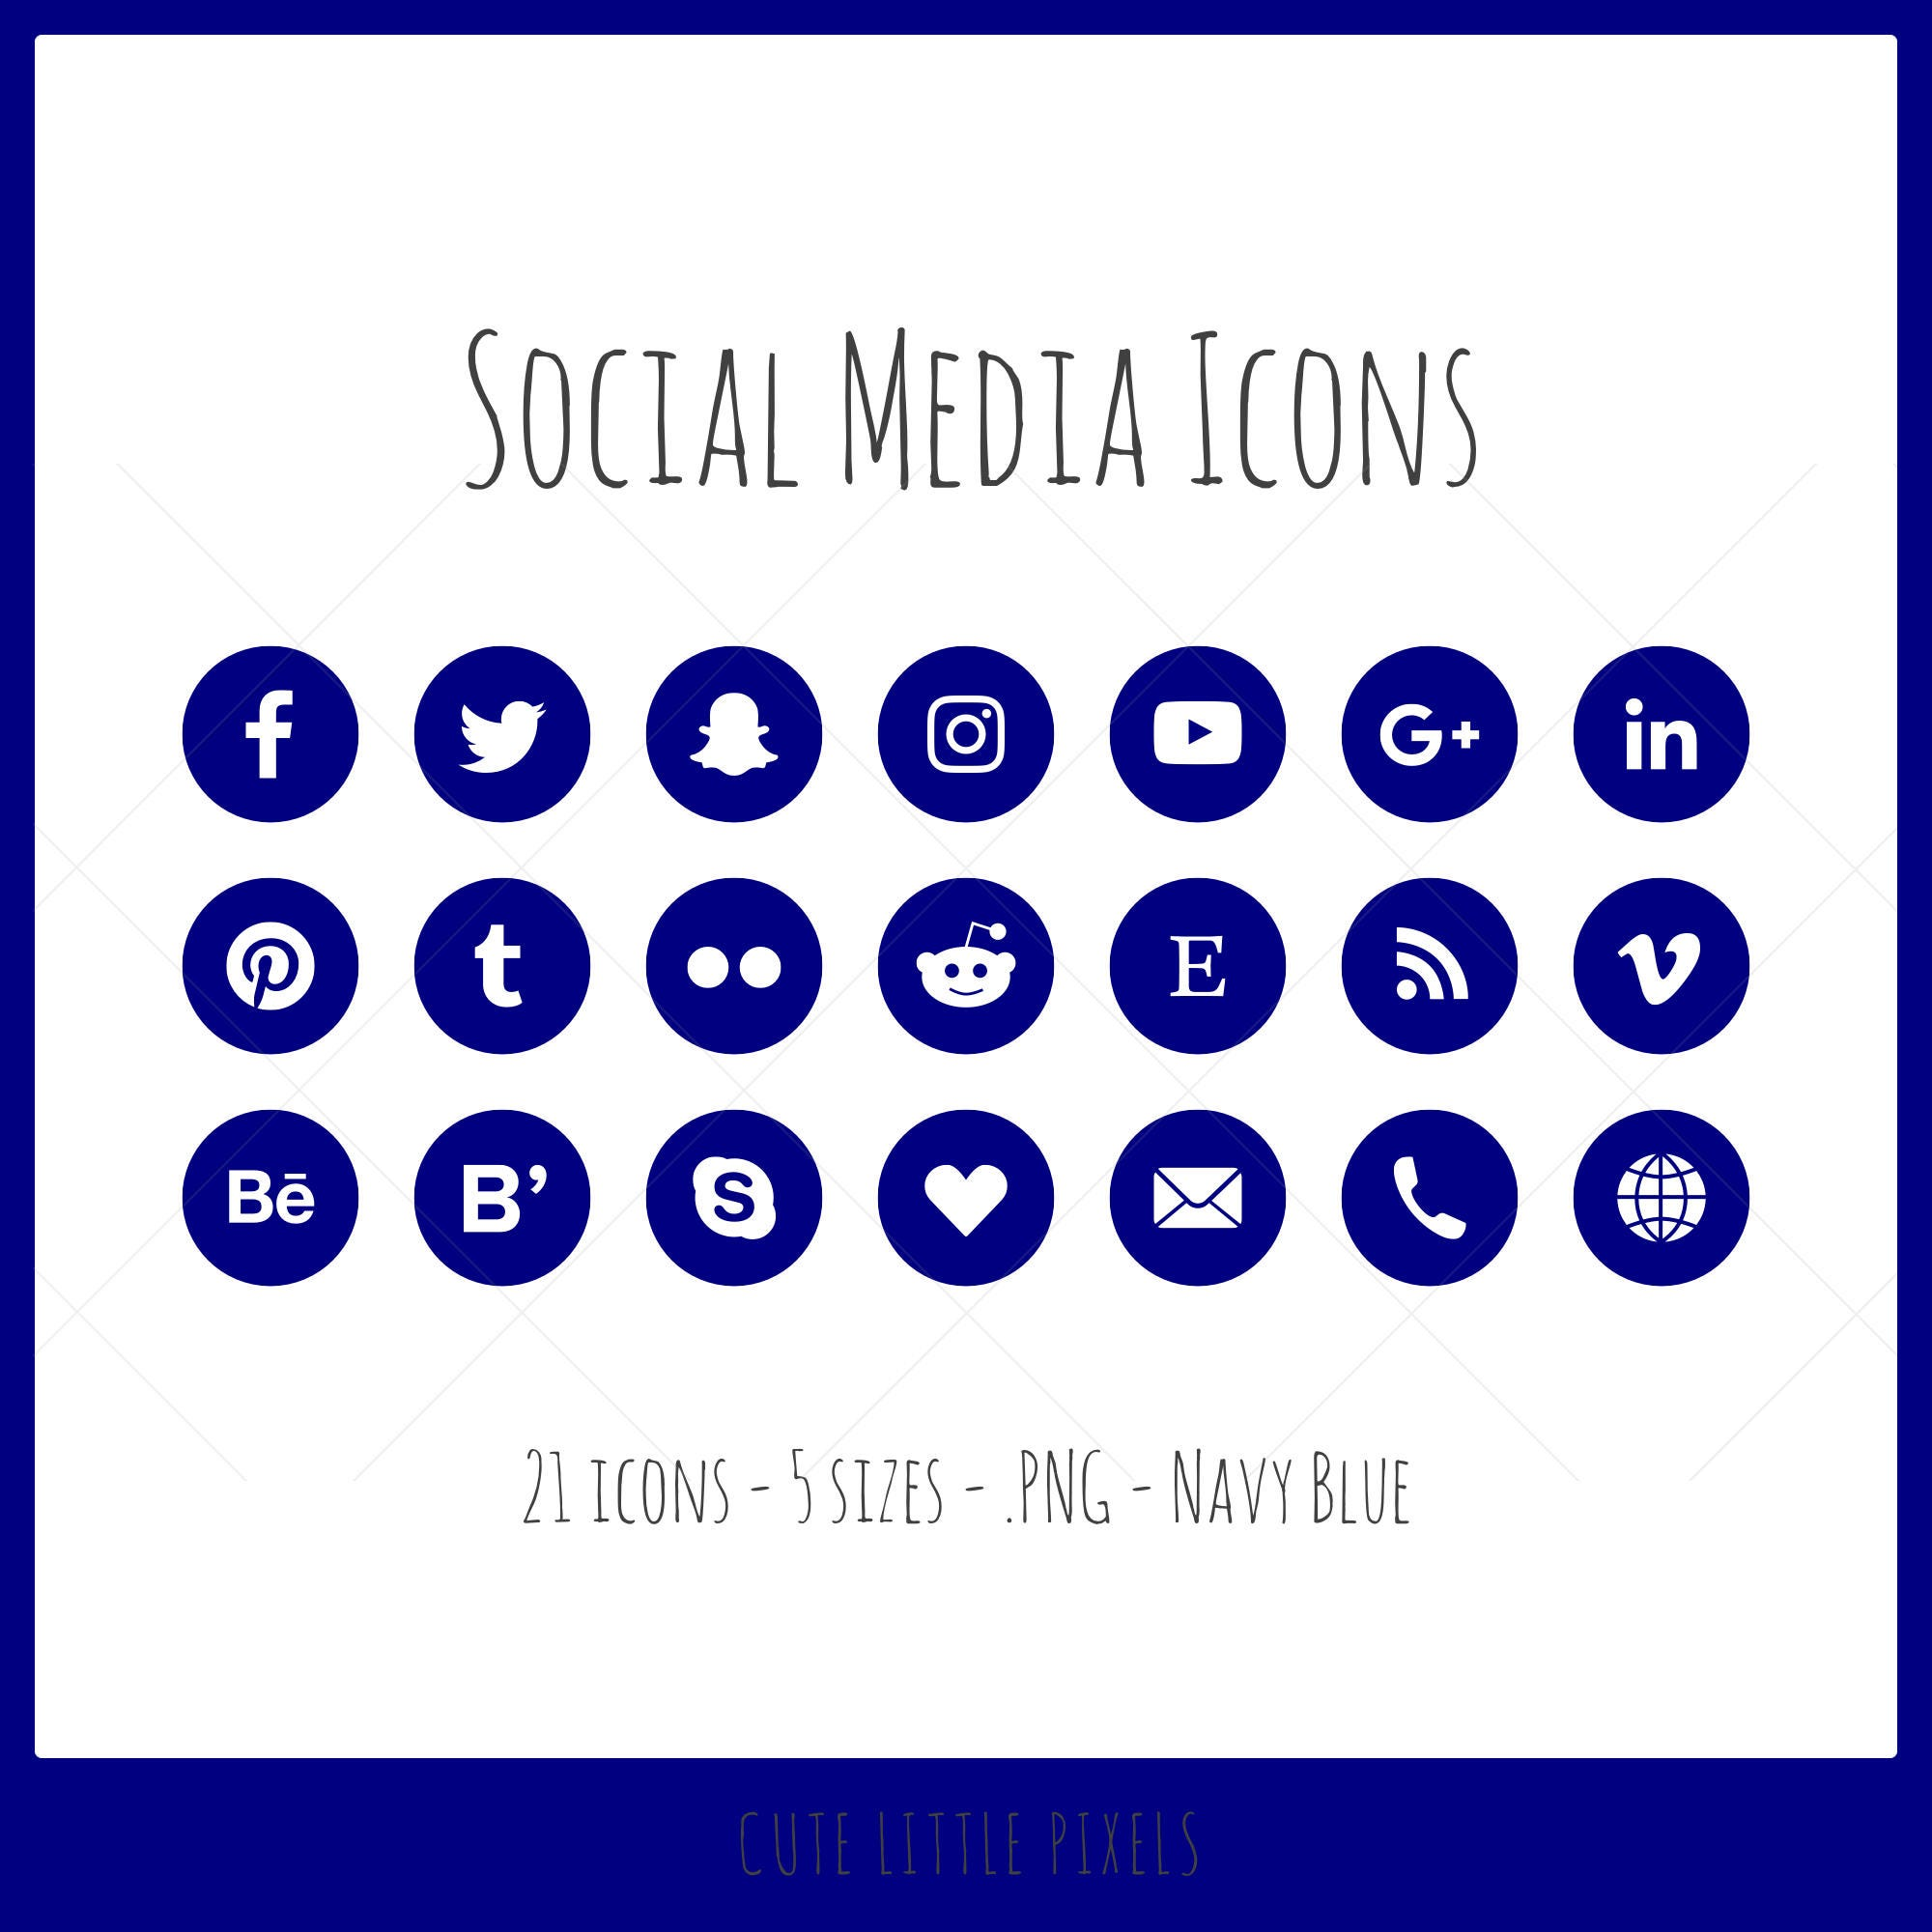 Social Media Icons - 21 icons in 5 sizes, navy blue, PNG files, flat style,  dark blue